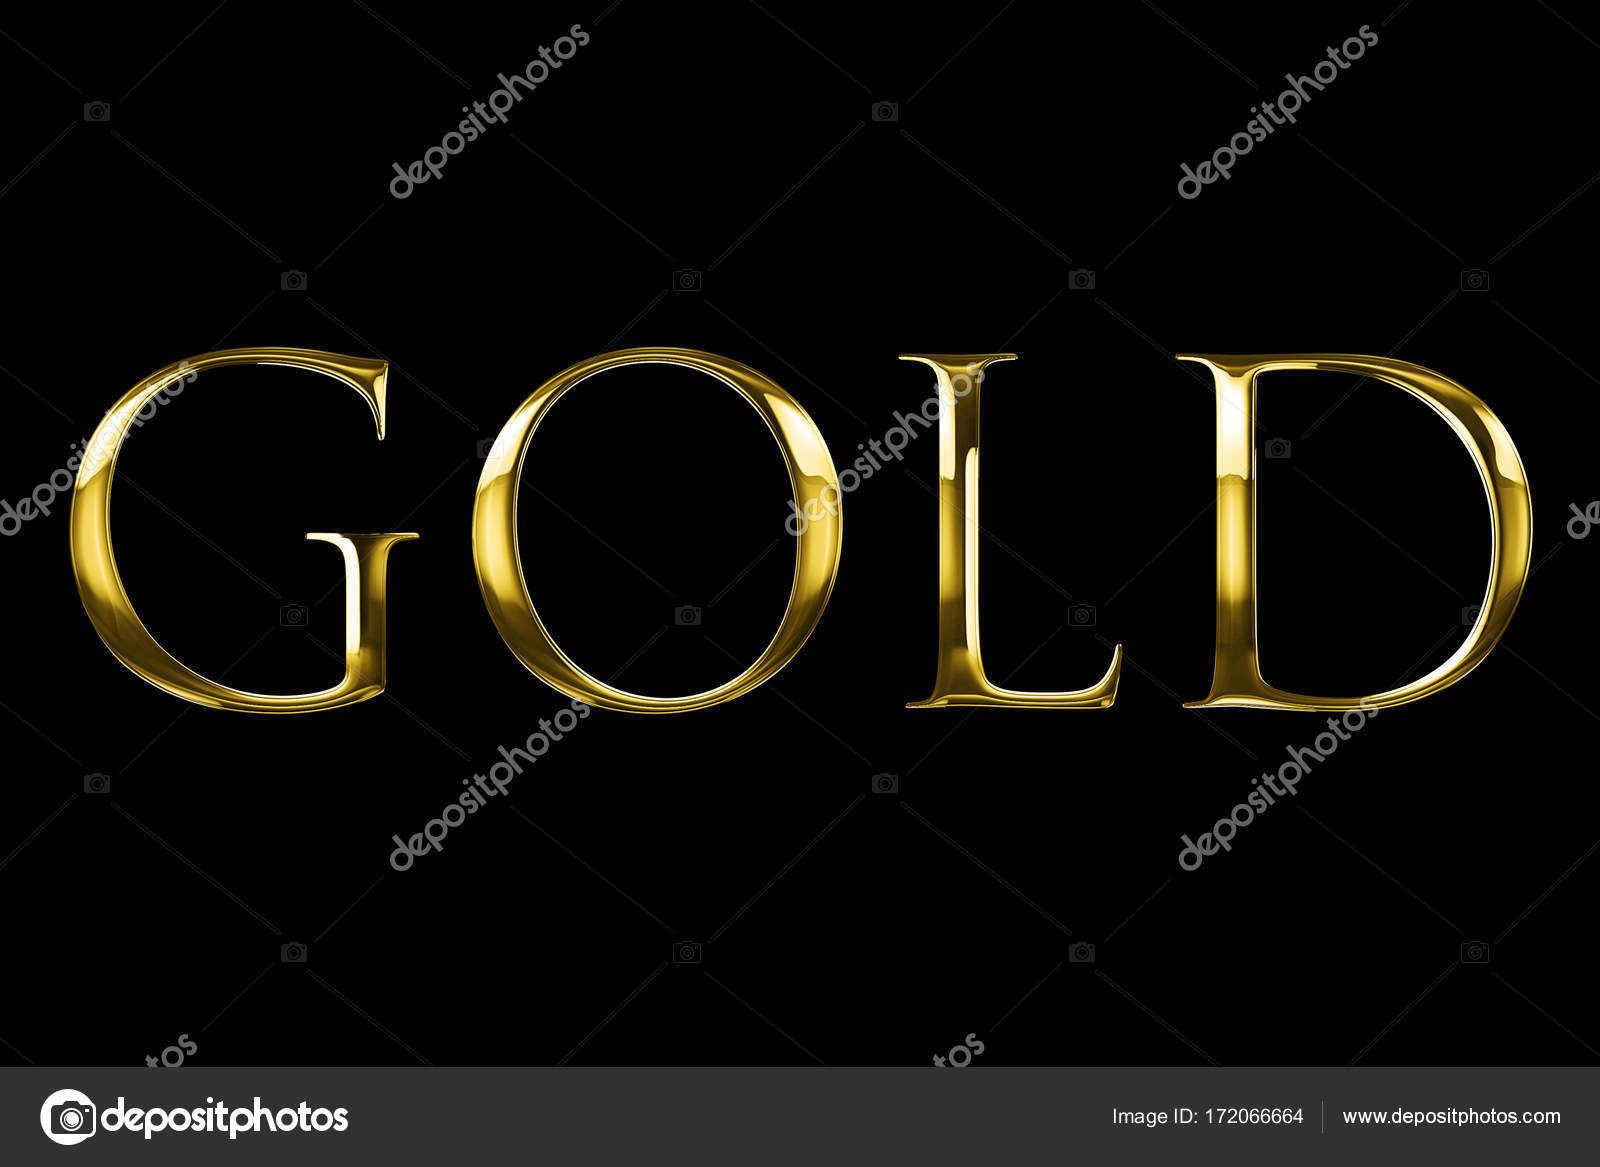 Vintage yellow golden metallic with gold word text series symbol